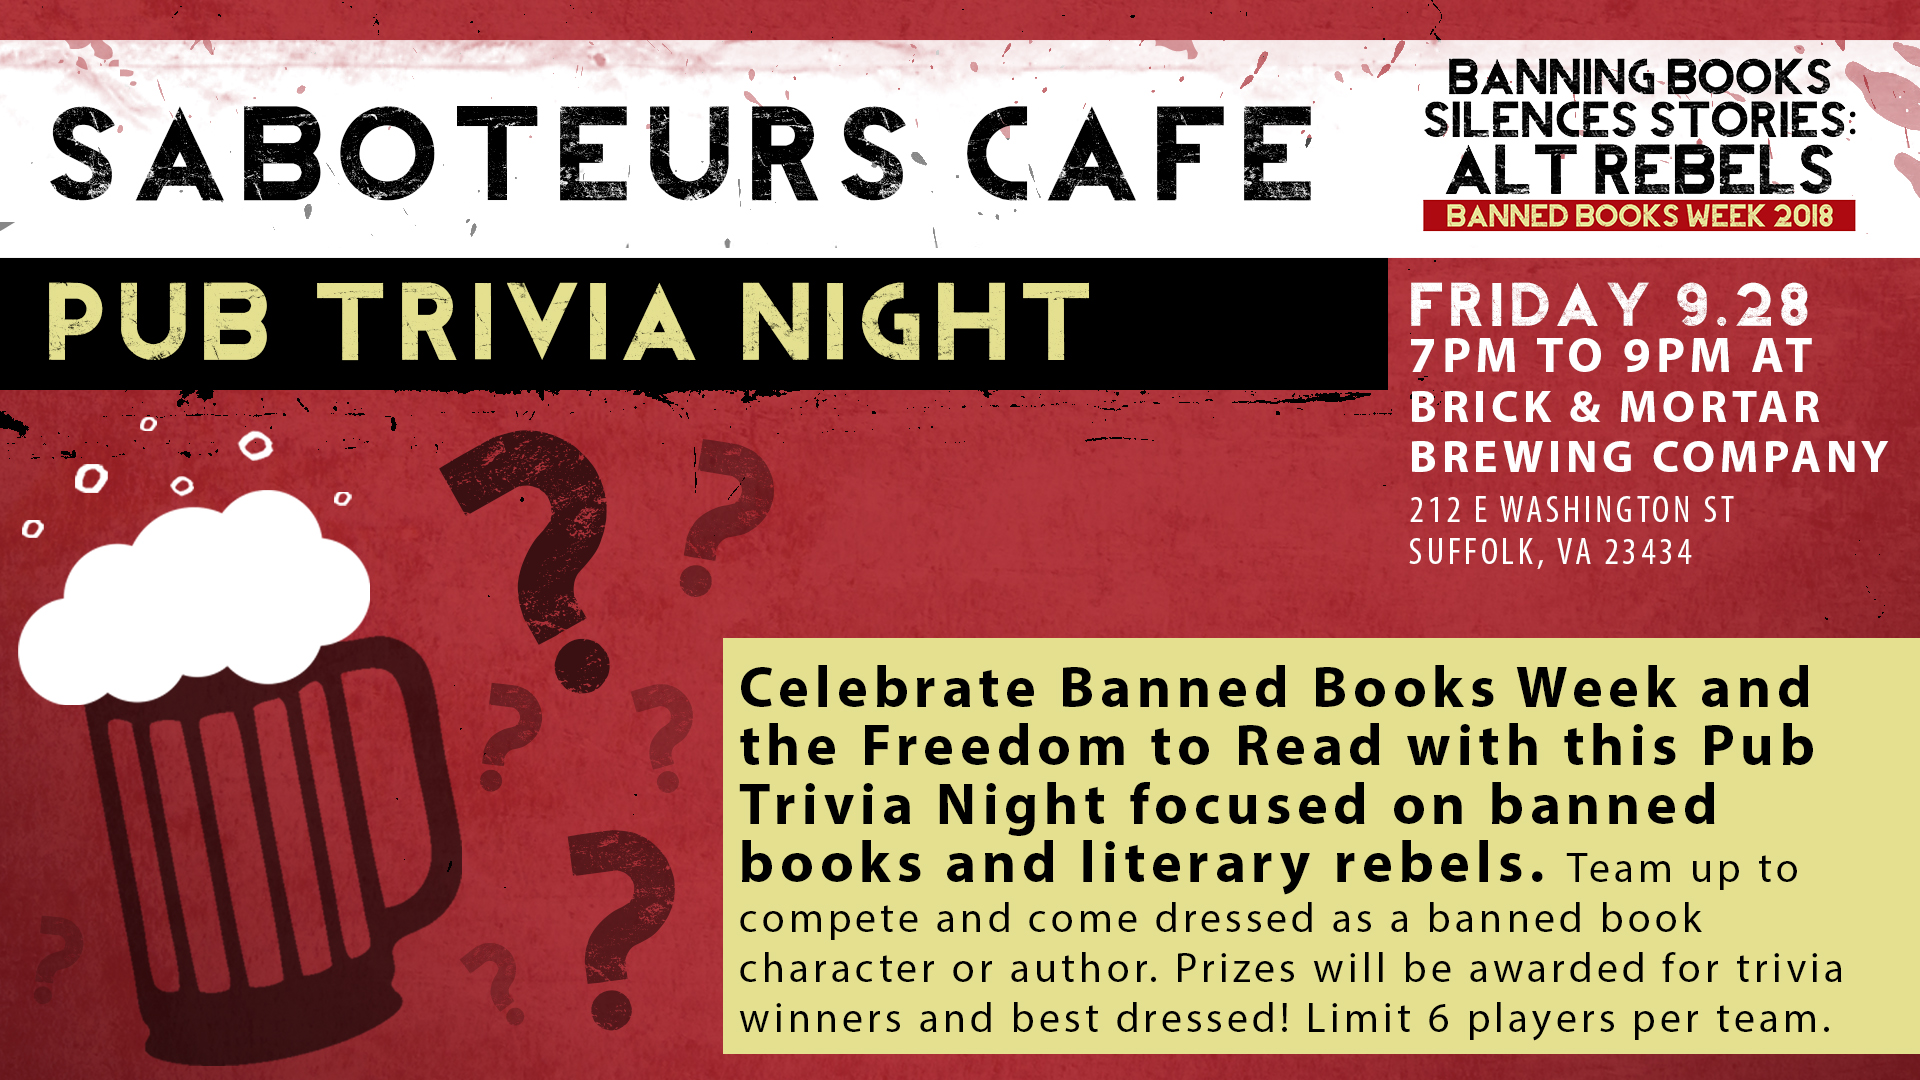 Saboteurs Café a Pub Trivia Night: Literary Rebels